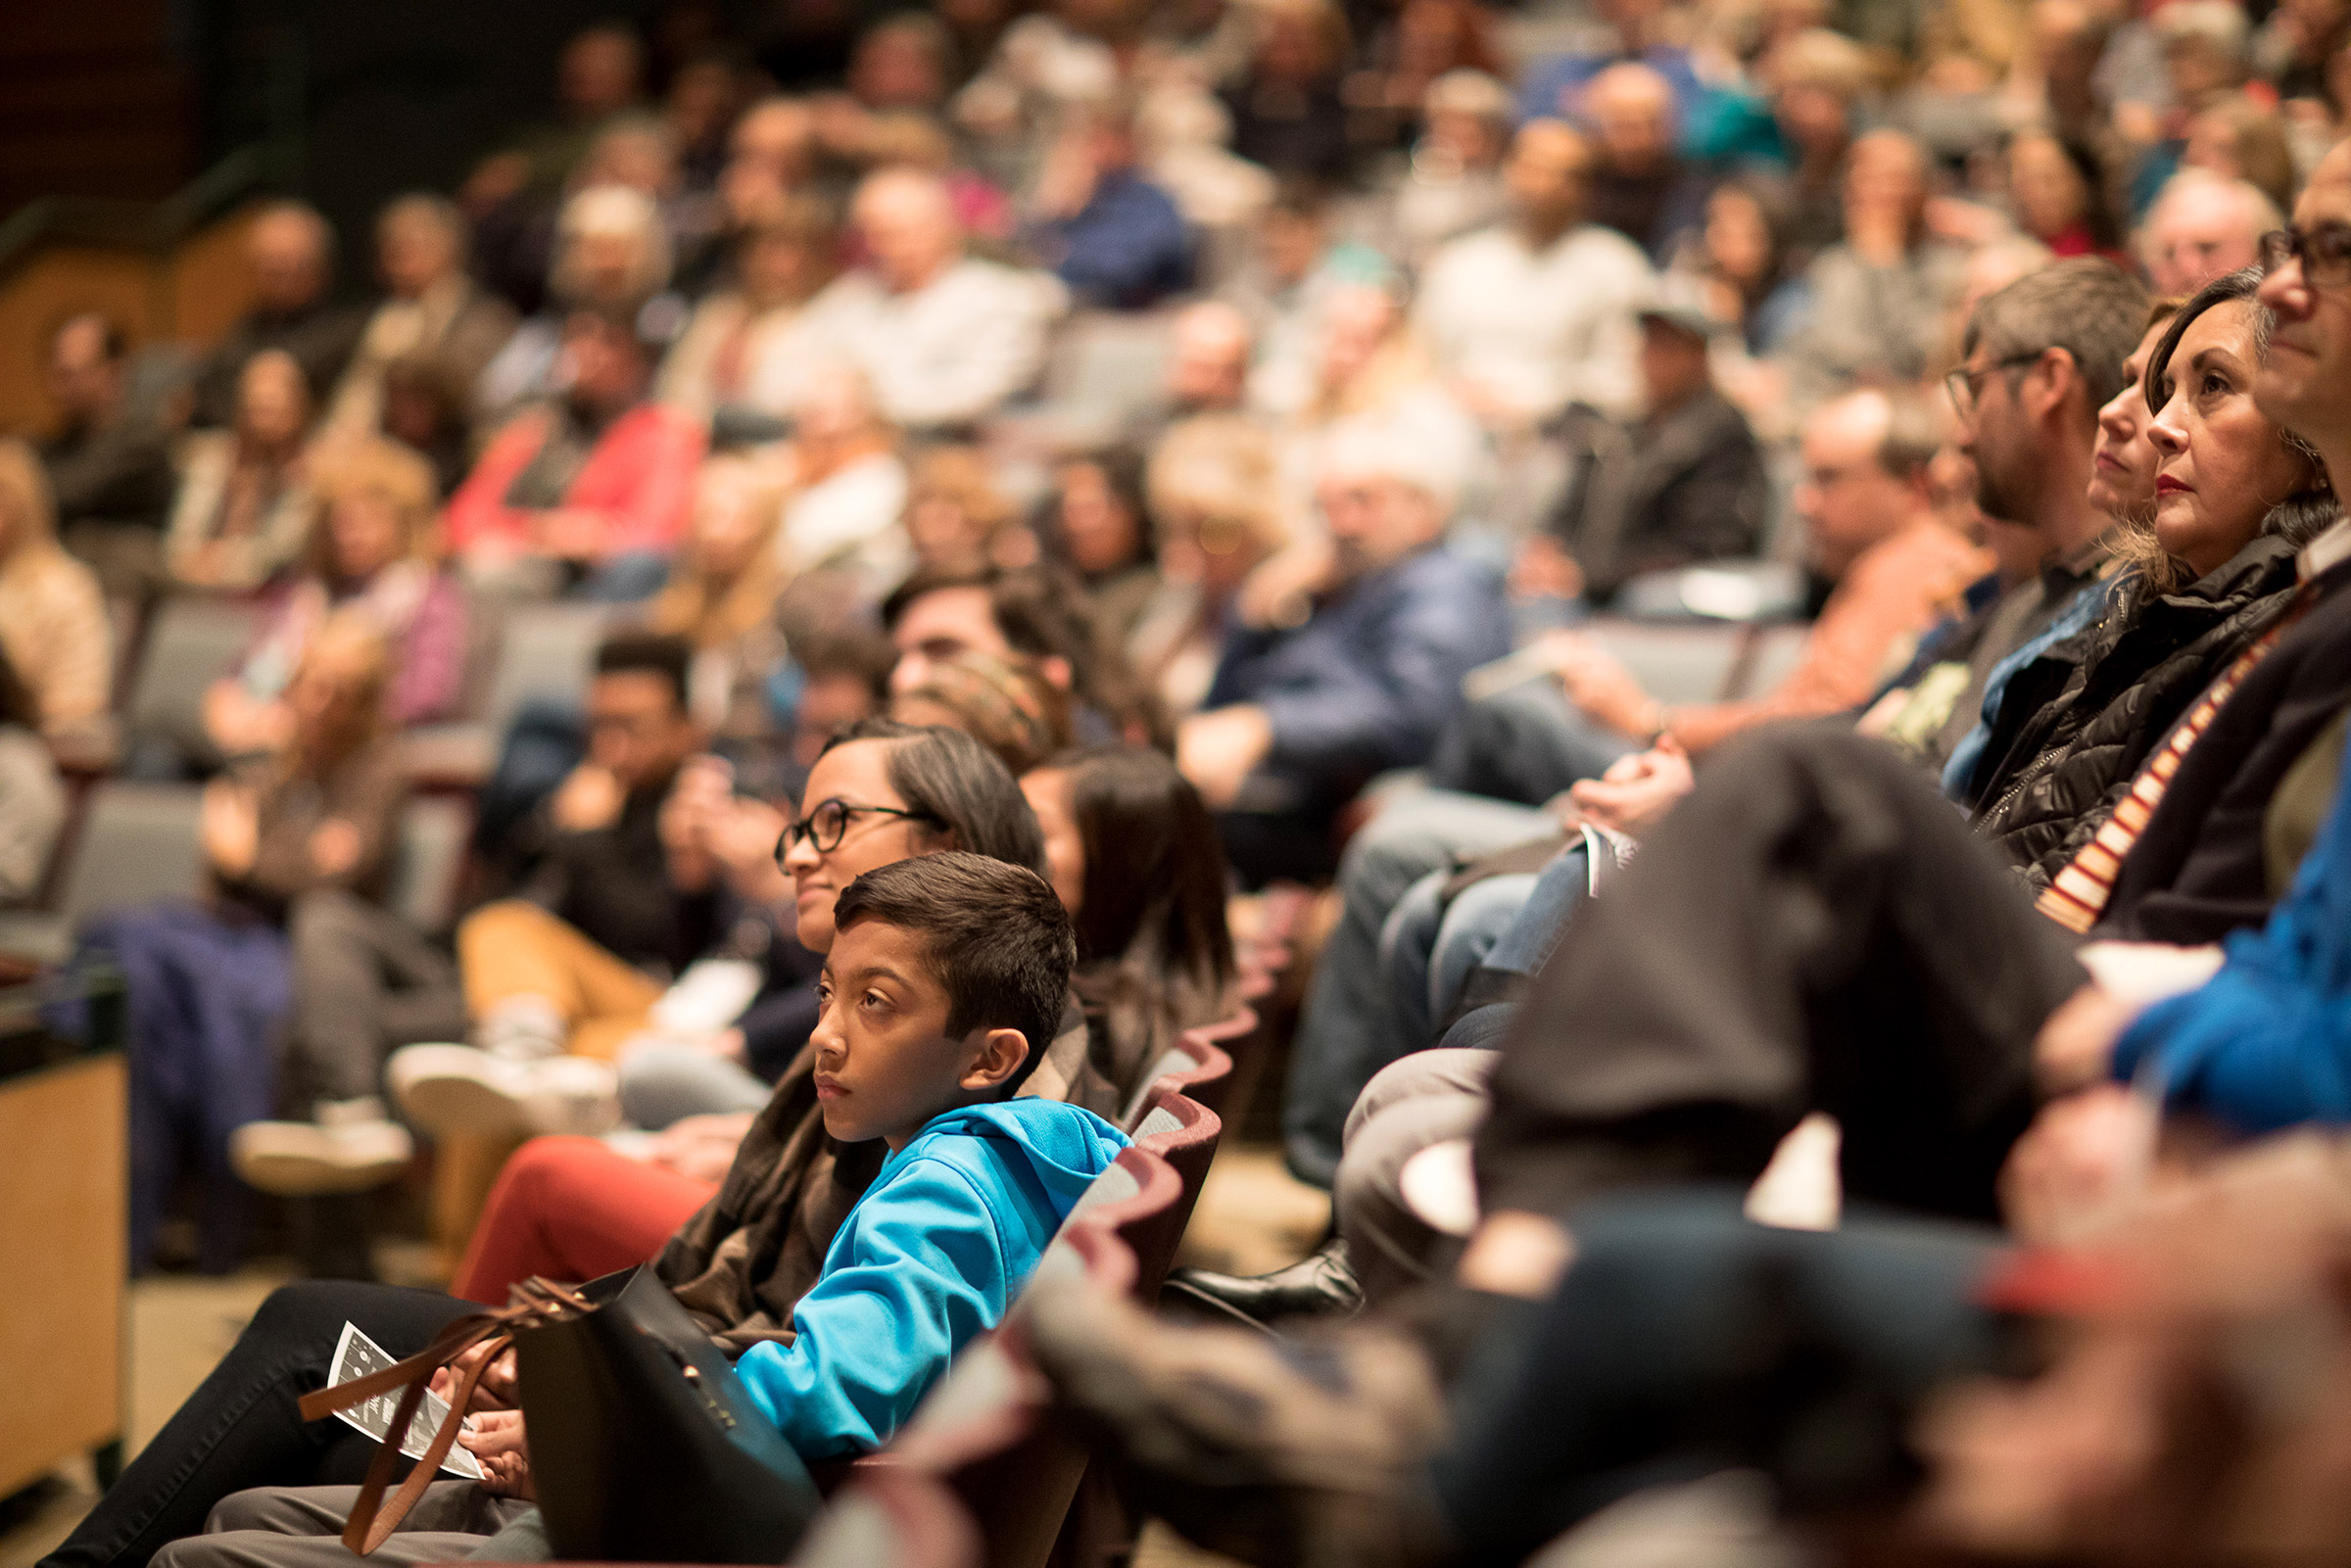 The Virginia Film Festival will kick off Thursday and run through Sunday, with more than 150 screenings scheduled.